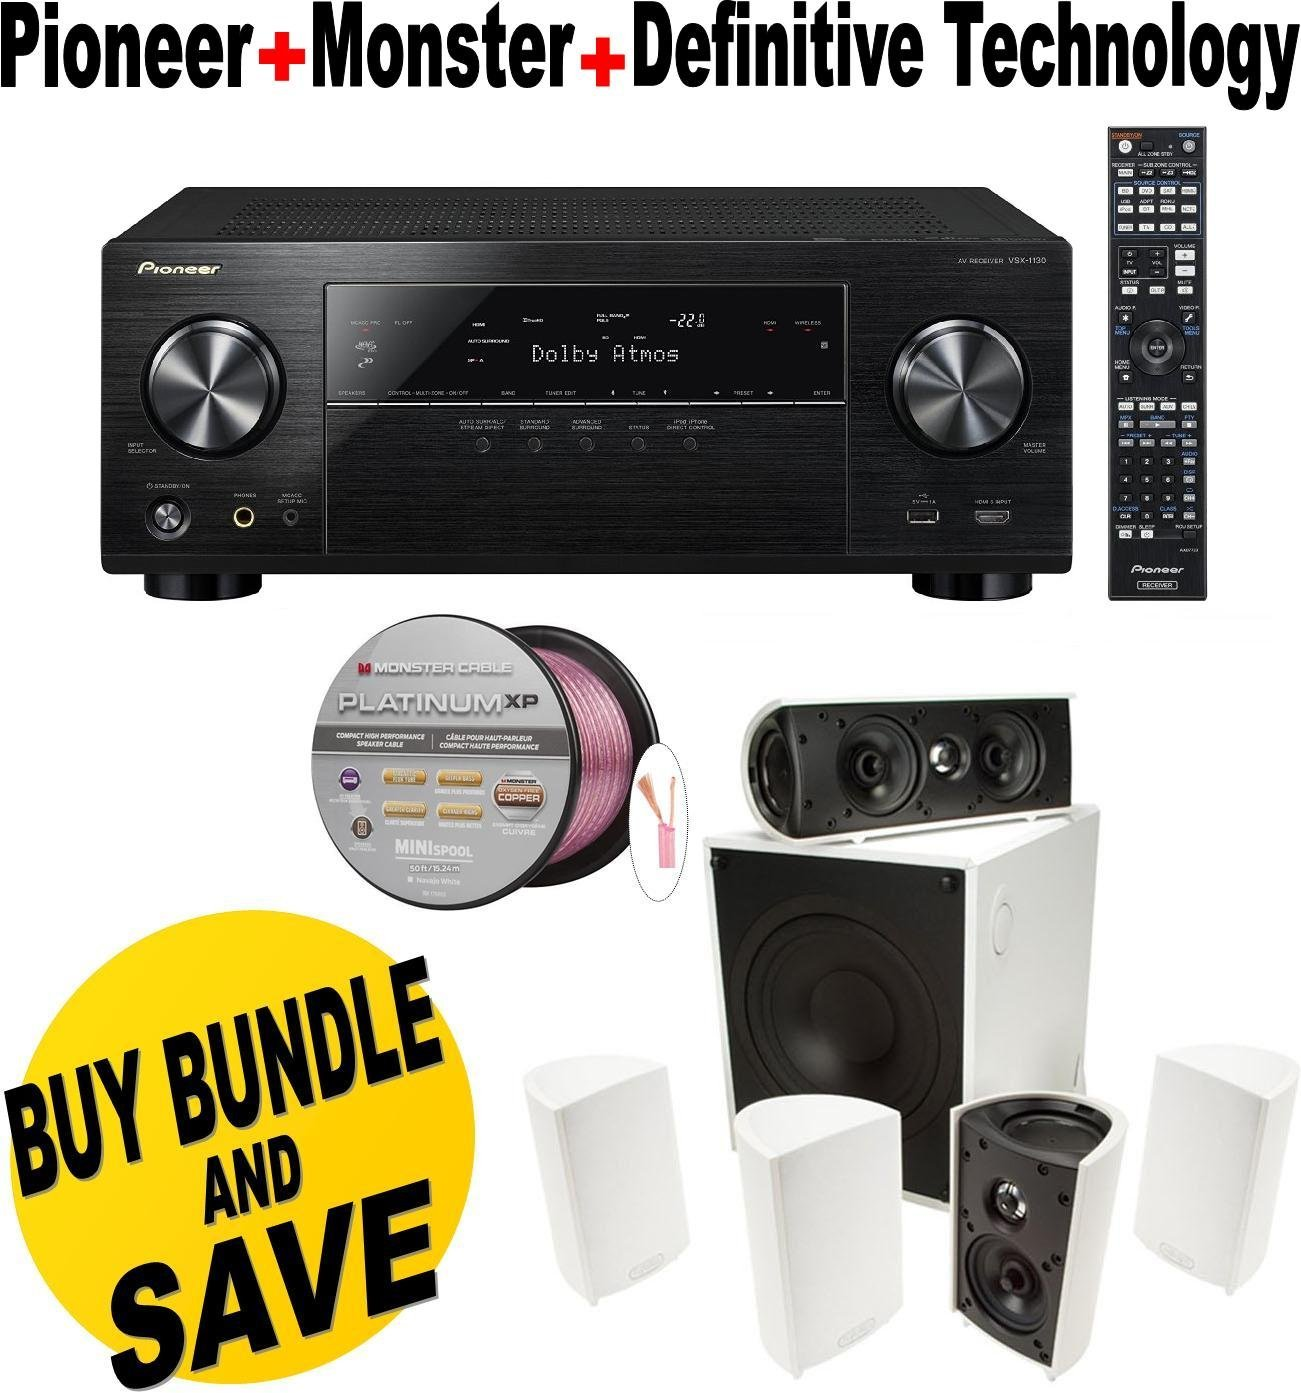 Pioneer VSX-1130-K 7.2-Channel AV Receiver with Built-In Bluetooth and Wi-Fi (Black) + Definitive Technology - Definitive Technology ProCinema 600 5.1 Speaker System (Set of Six, White) Bundle